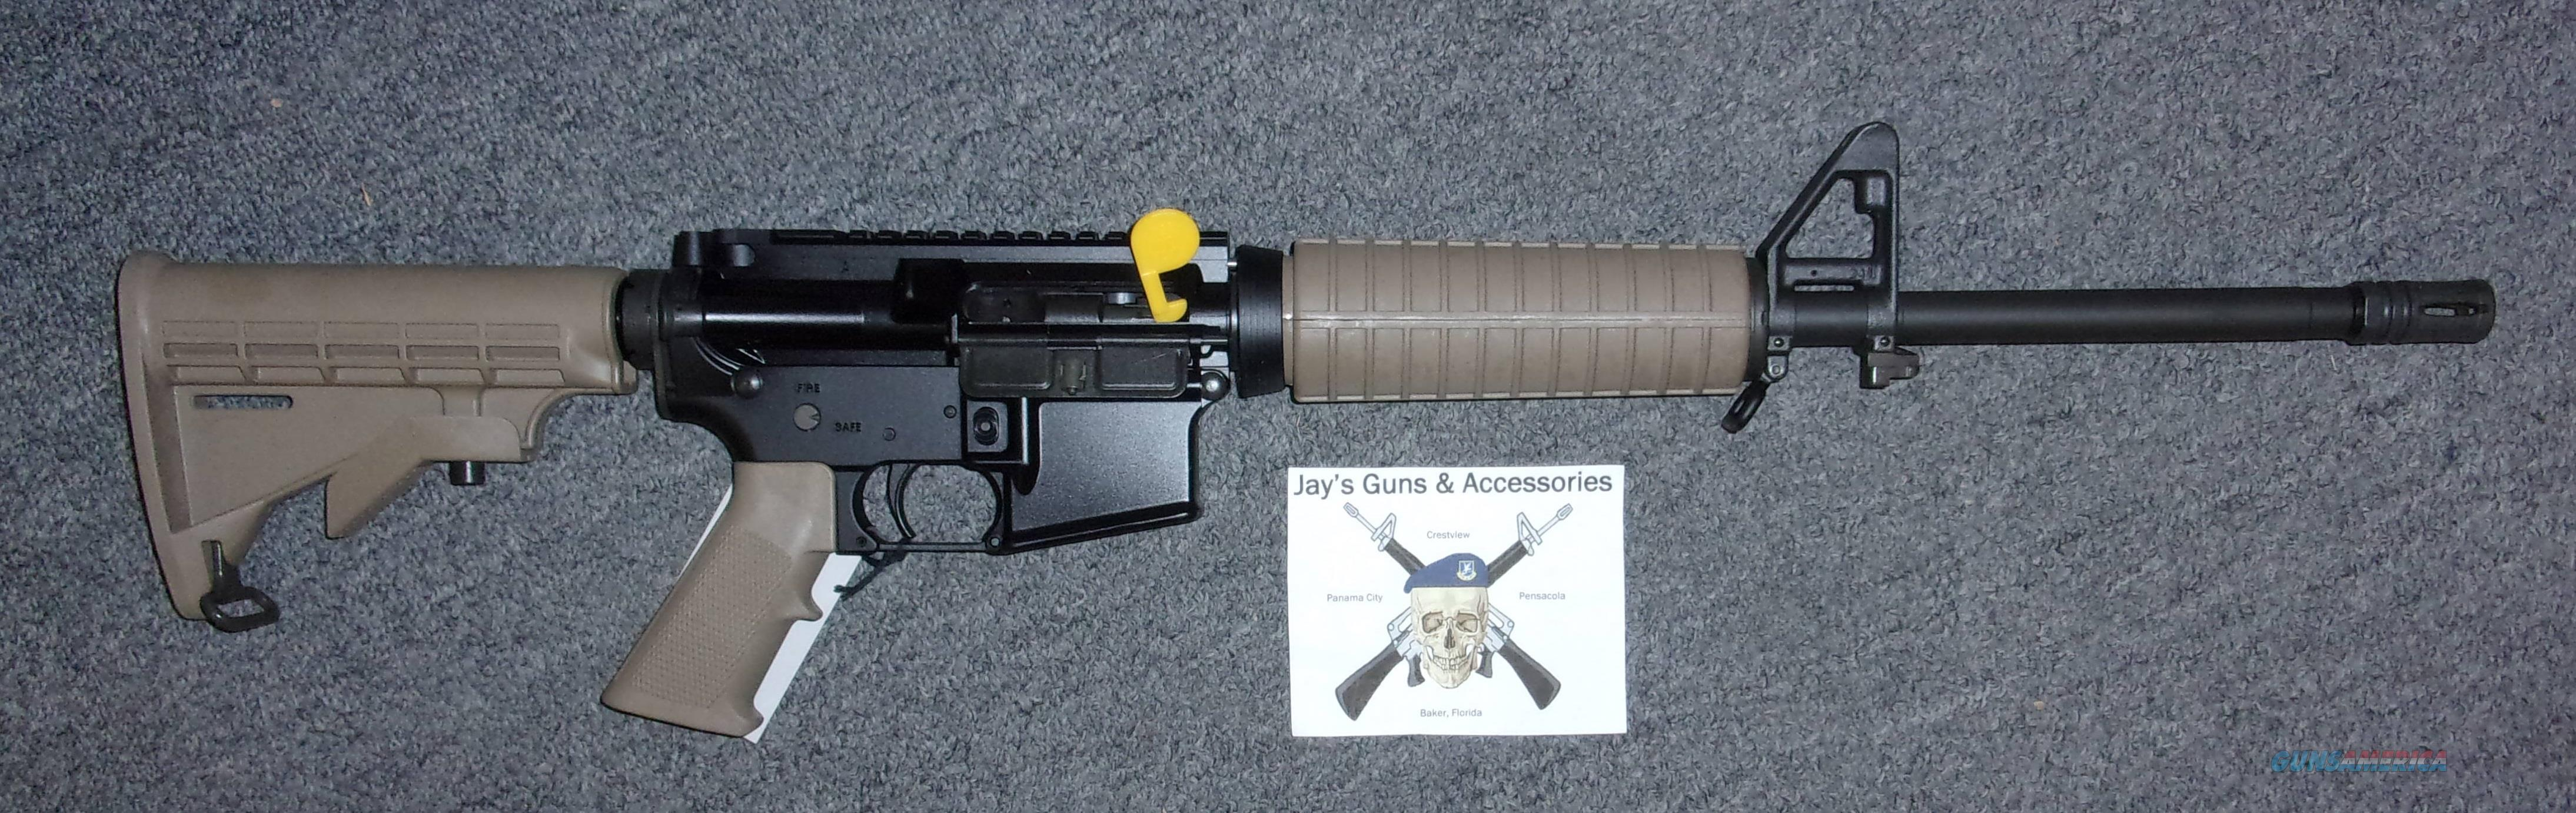 Del-Ton DTI-15 Echo in FDE  Guns > Rifles > AR-15 Rifles - Small Manufacturers > Complete Rifle